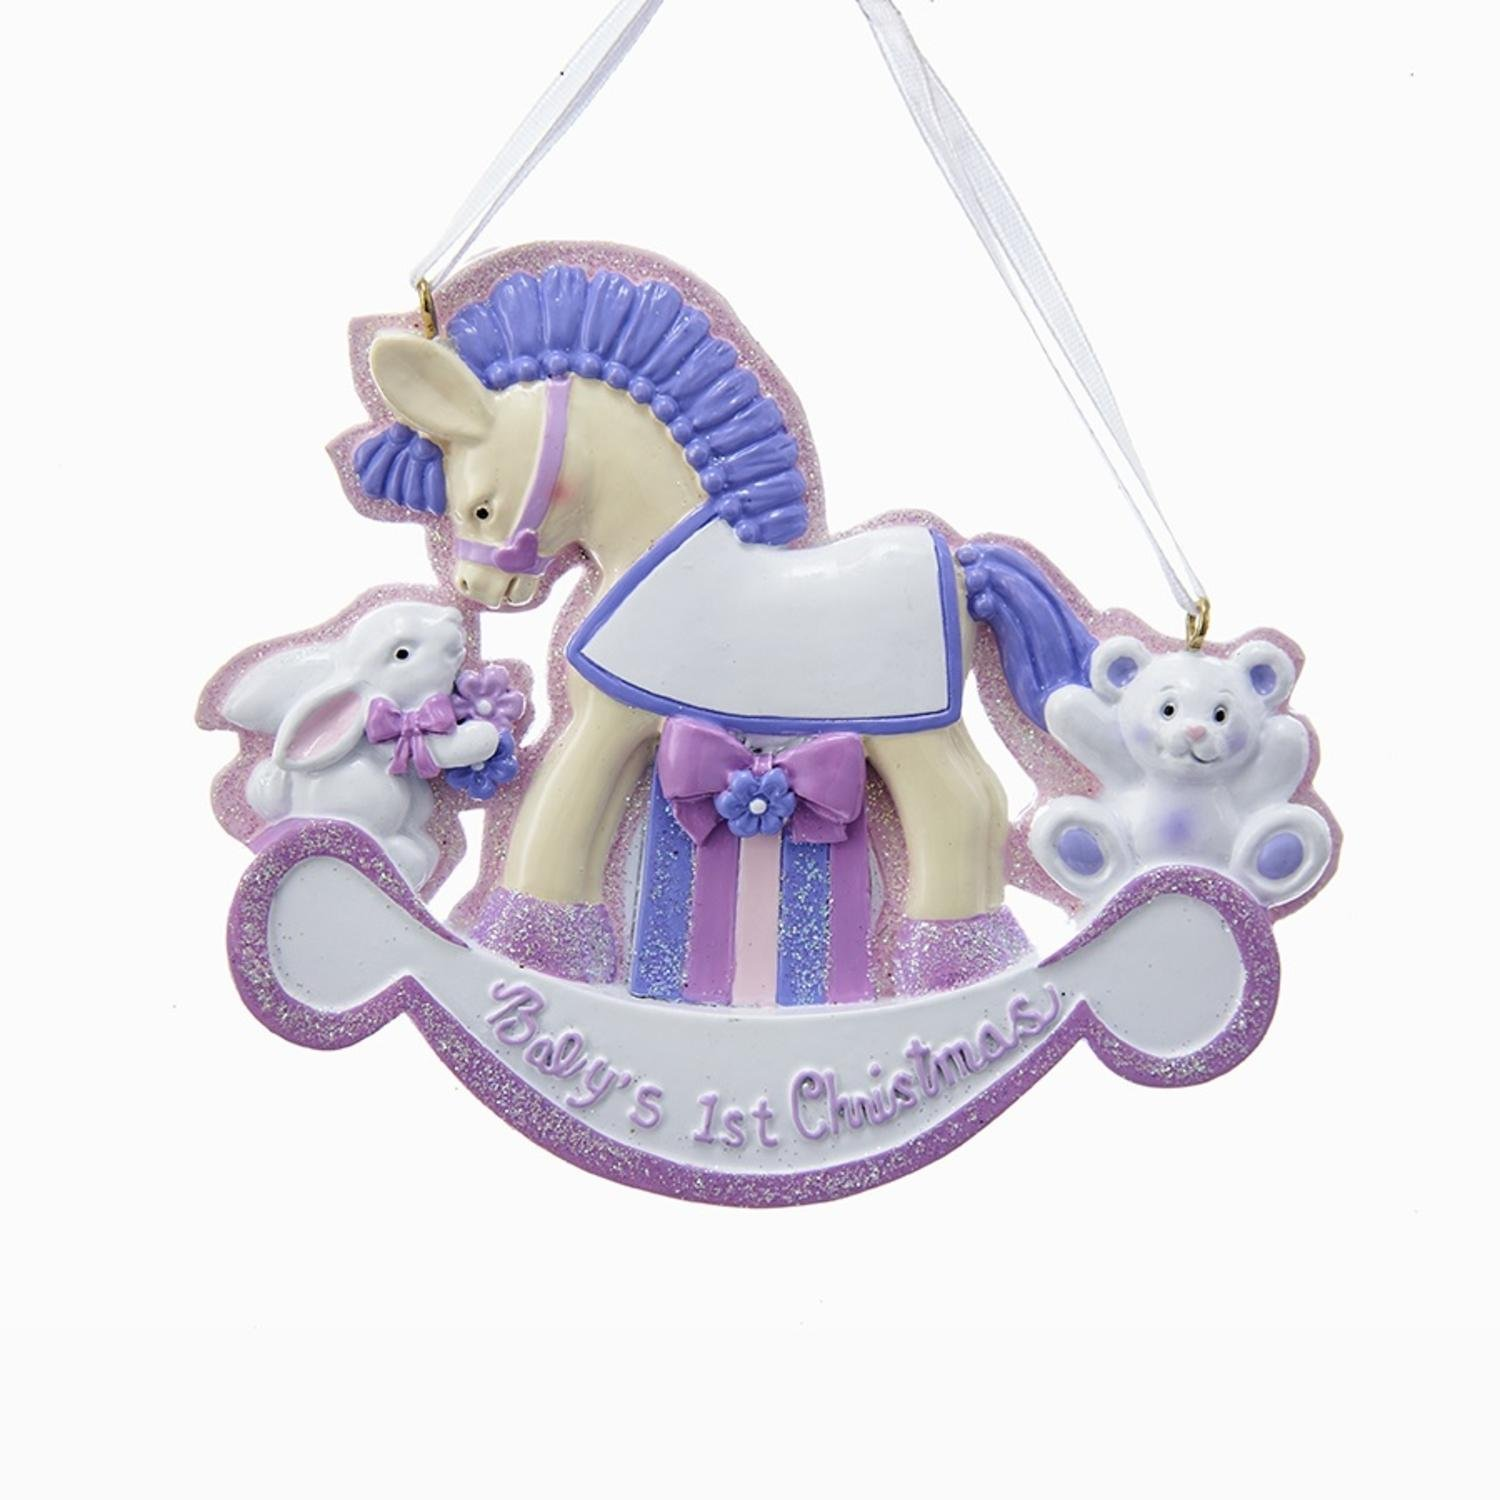 Pack of 12 Pink Girls Rocking Horse ''Baby's 1st Christmas'' Ornaments for Personalization 3.75''